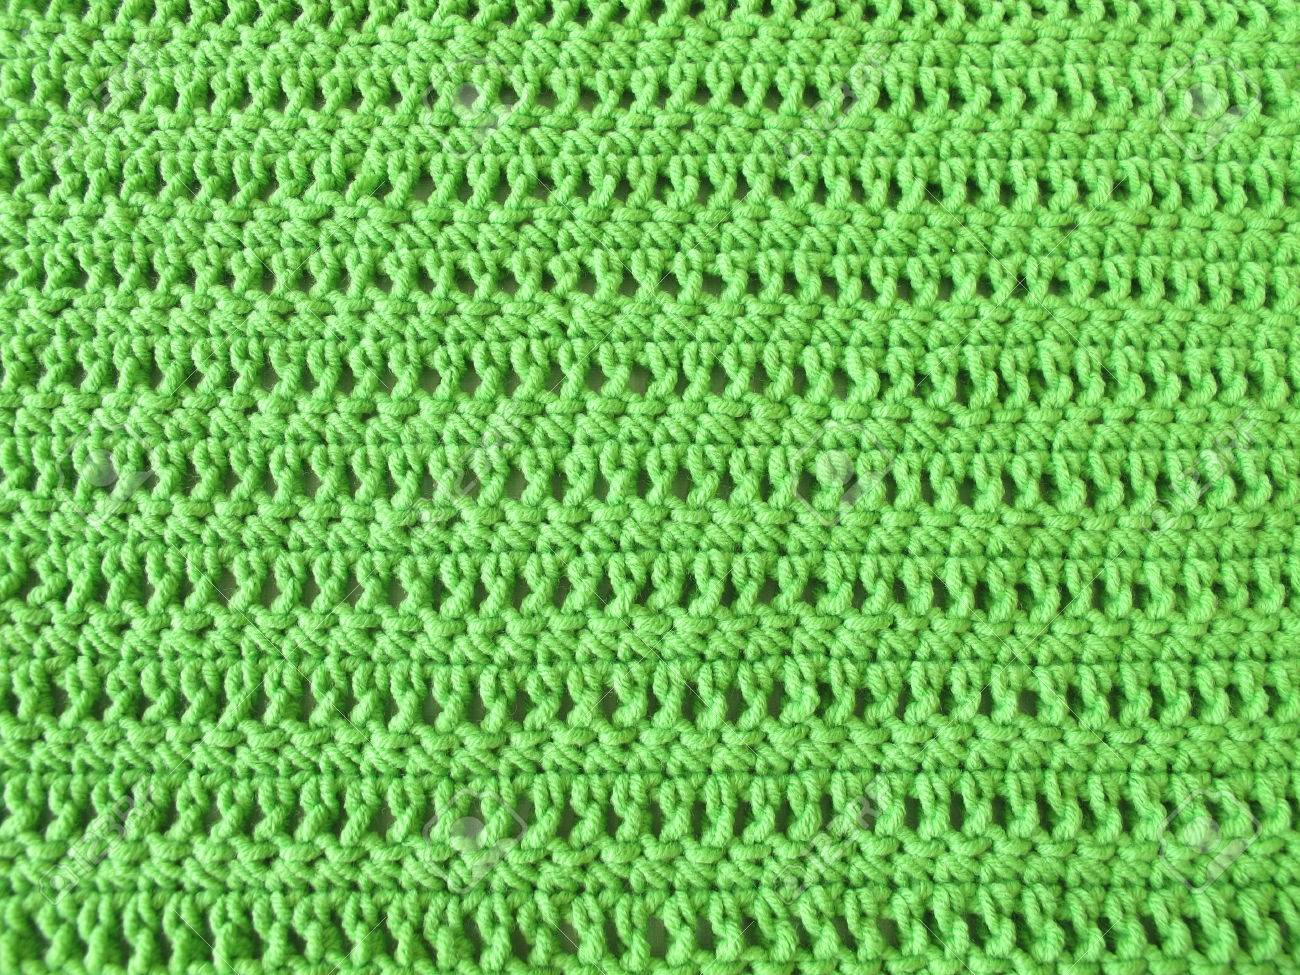 Patrón De Ganchillo De La Puntada Simple Y Doble Crochet En ...